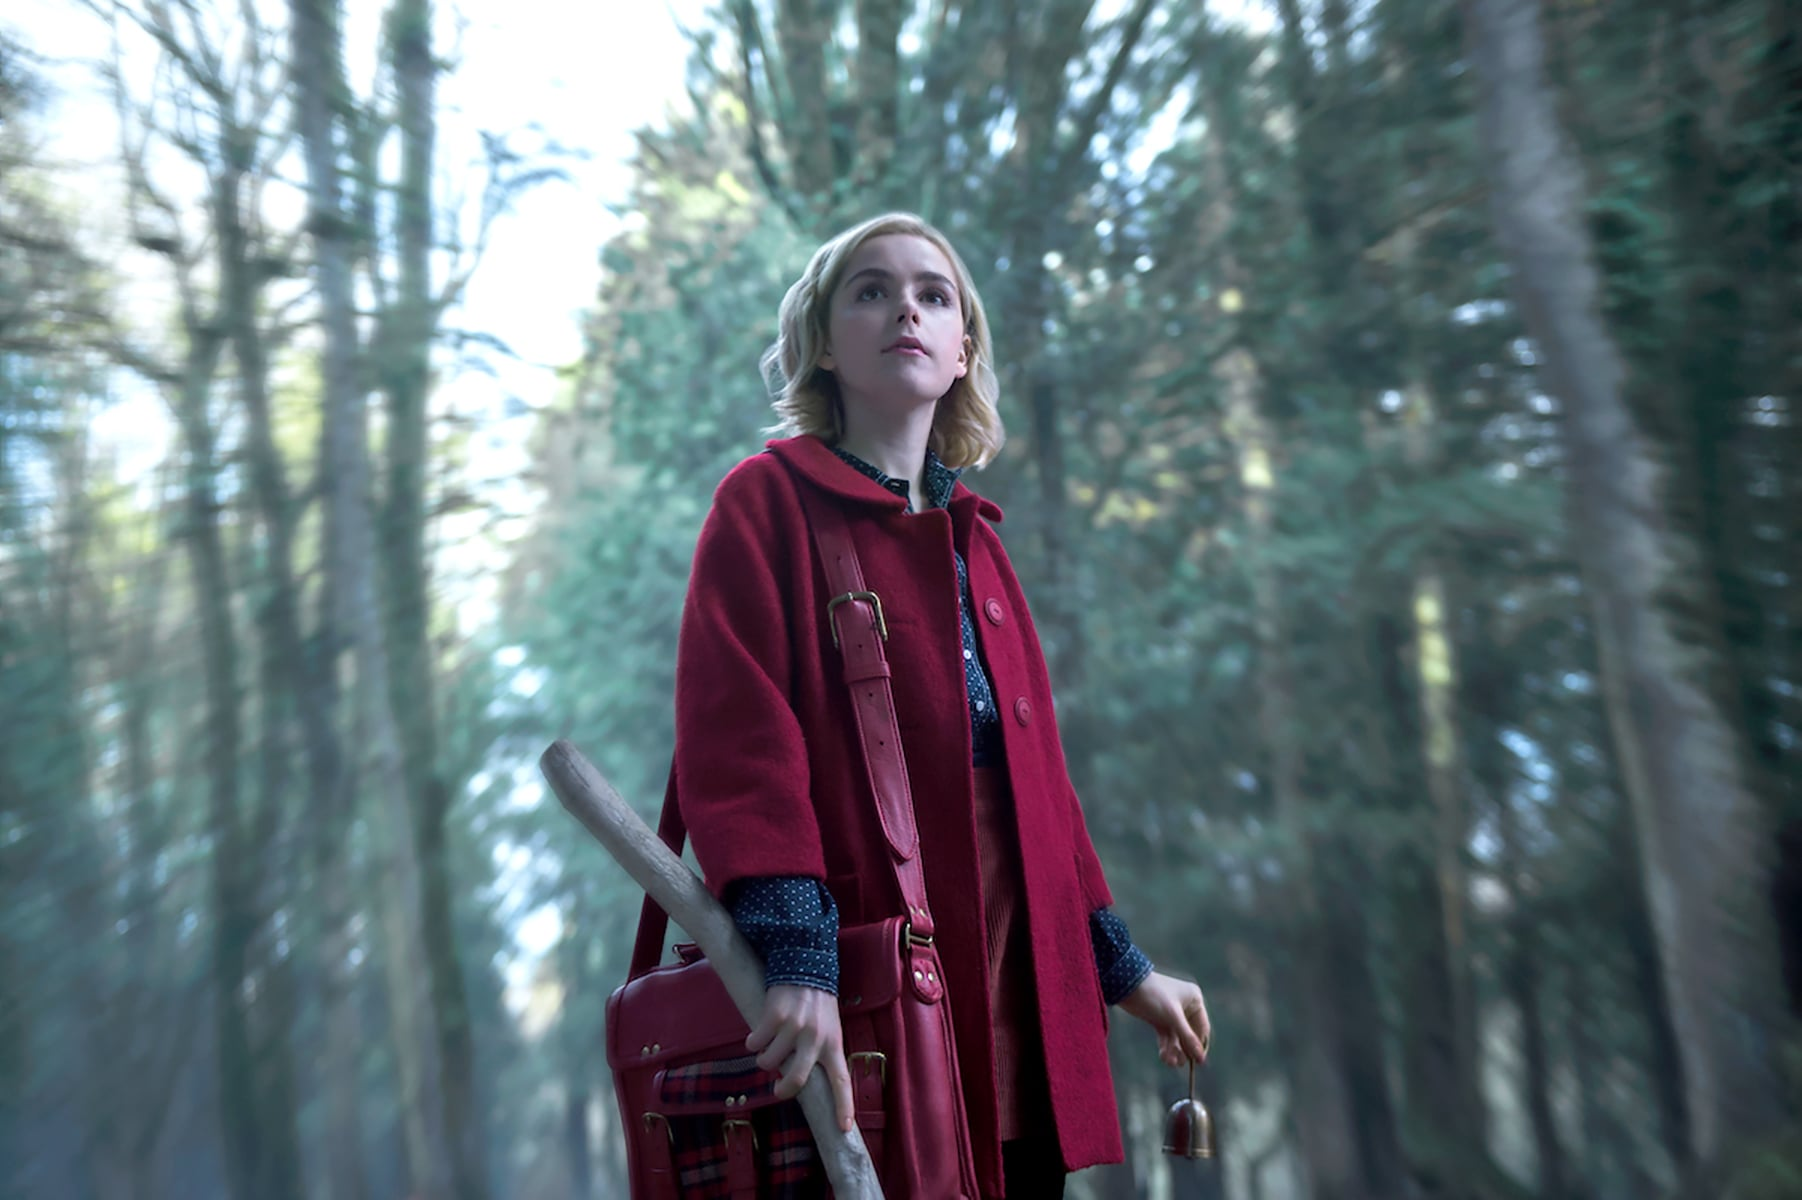 CHILLING ADVENTURES OF SABRINA, Kiernan Shipka in 'Chapter One: October Country', (Season 1, Episode 101, aired October 26, 2018), ph: Diya Pera /  Netflix / courtesy Everett Collection